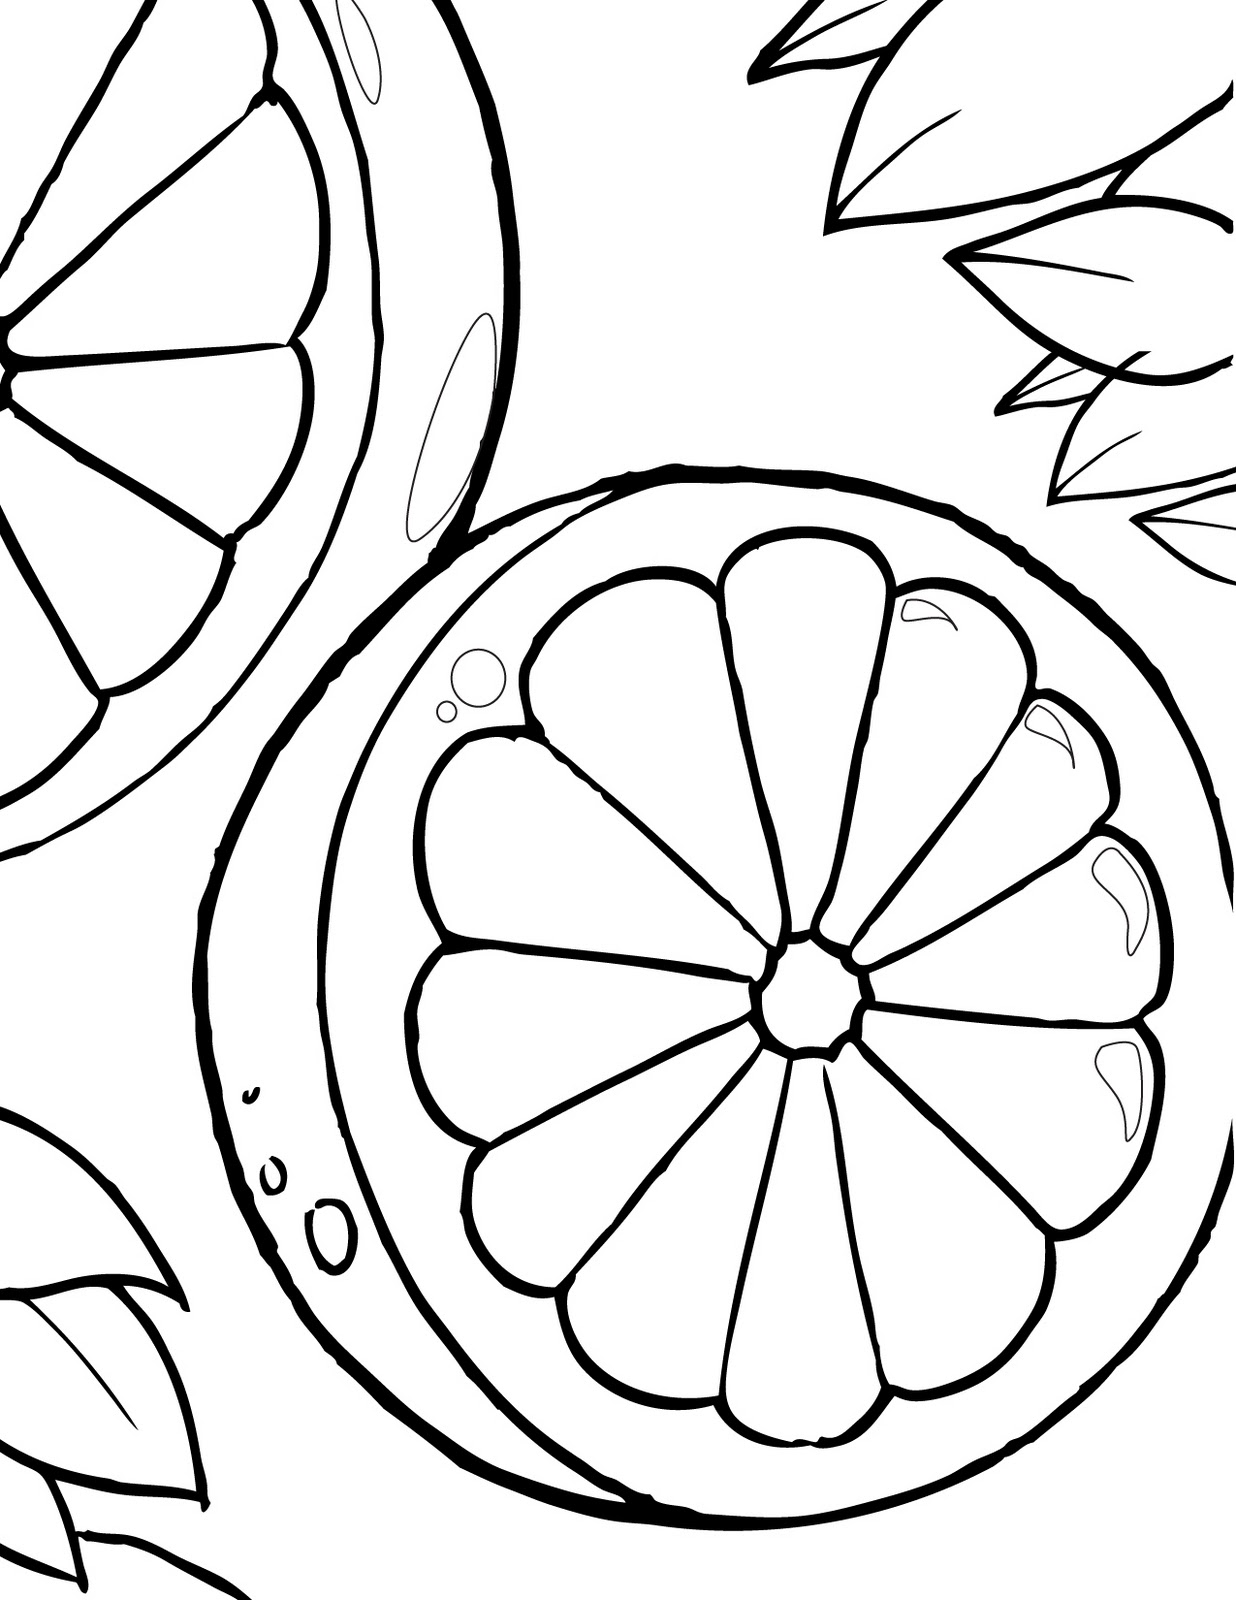 coloring pages of a - photo#43